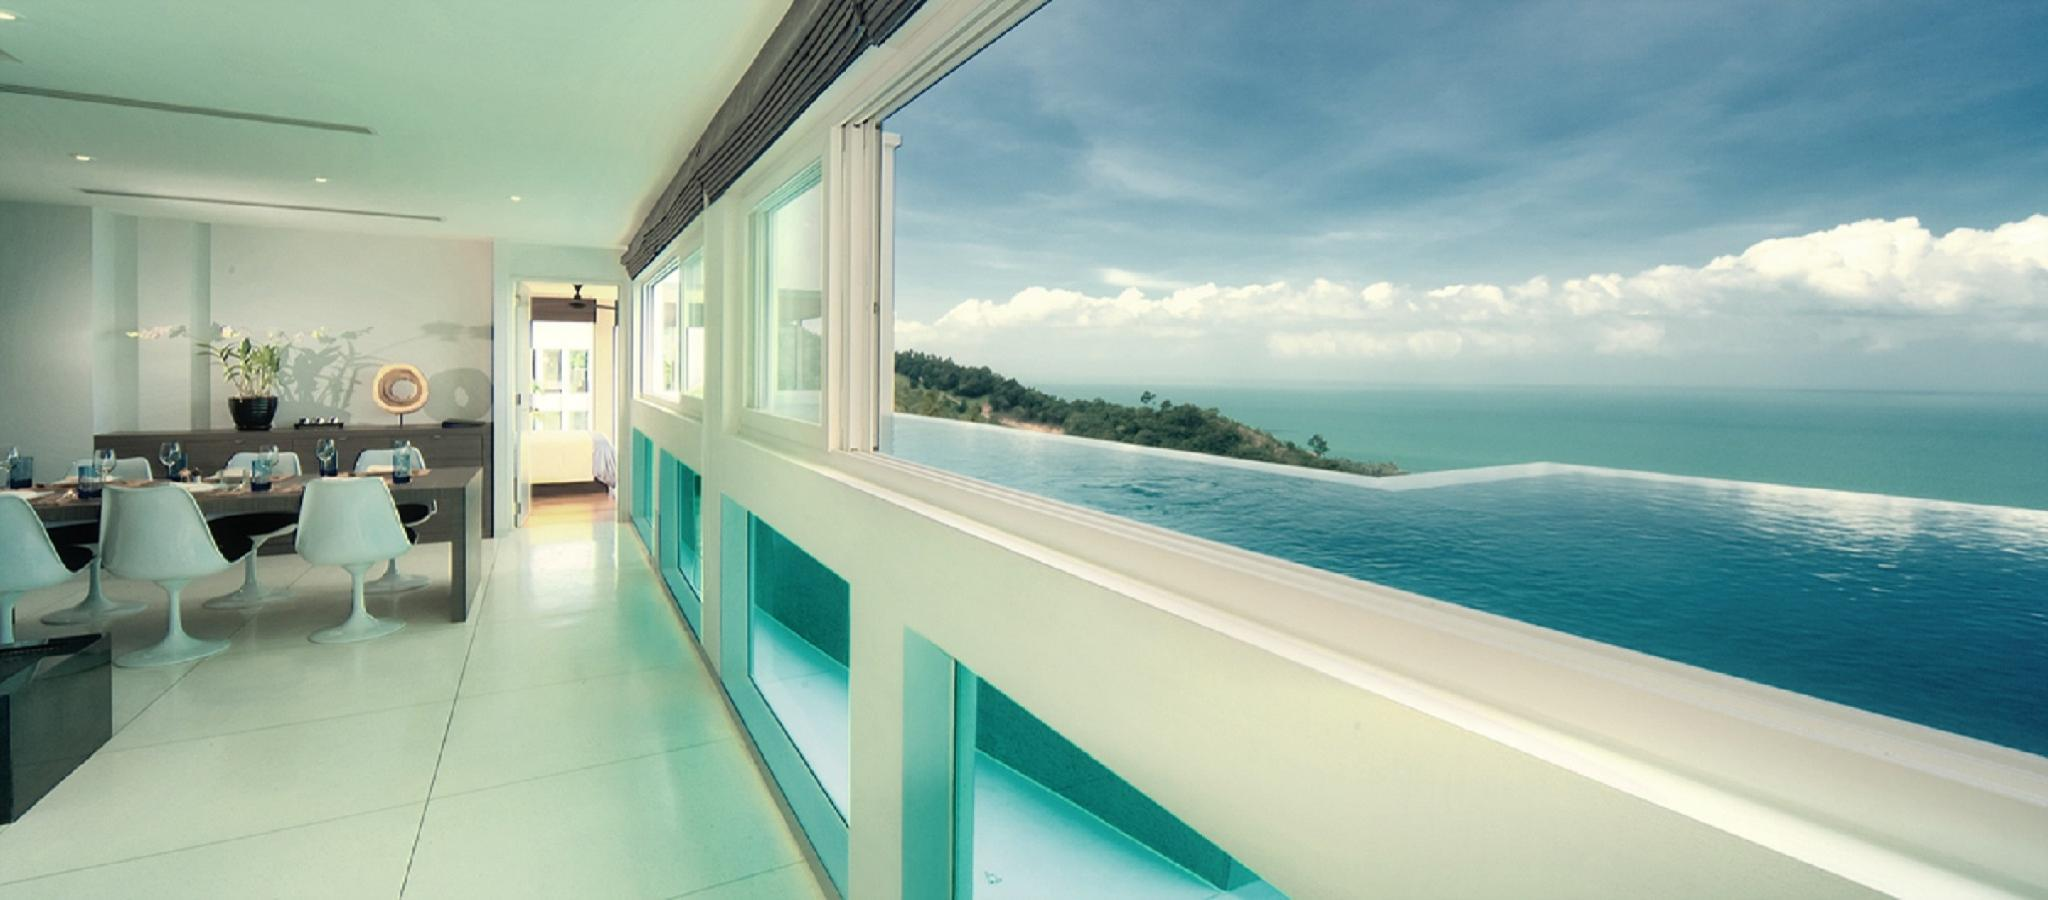 3 Bedroom Penthouse Ocean View